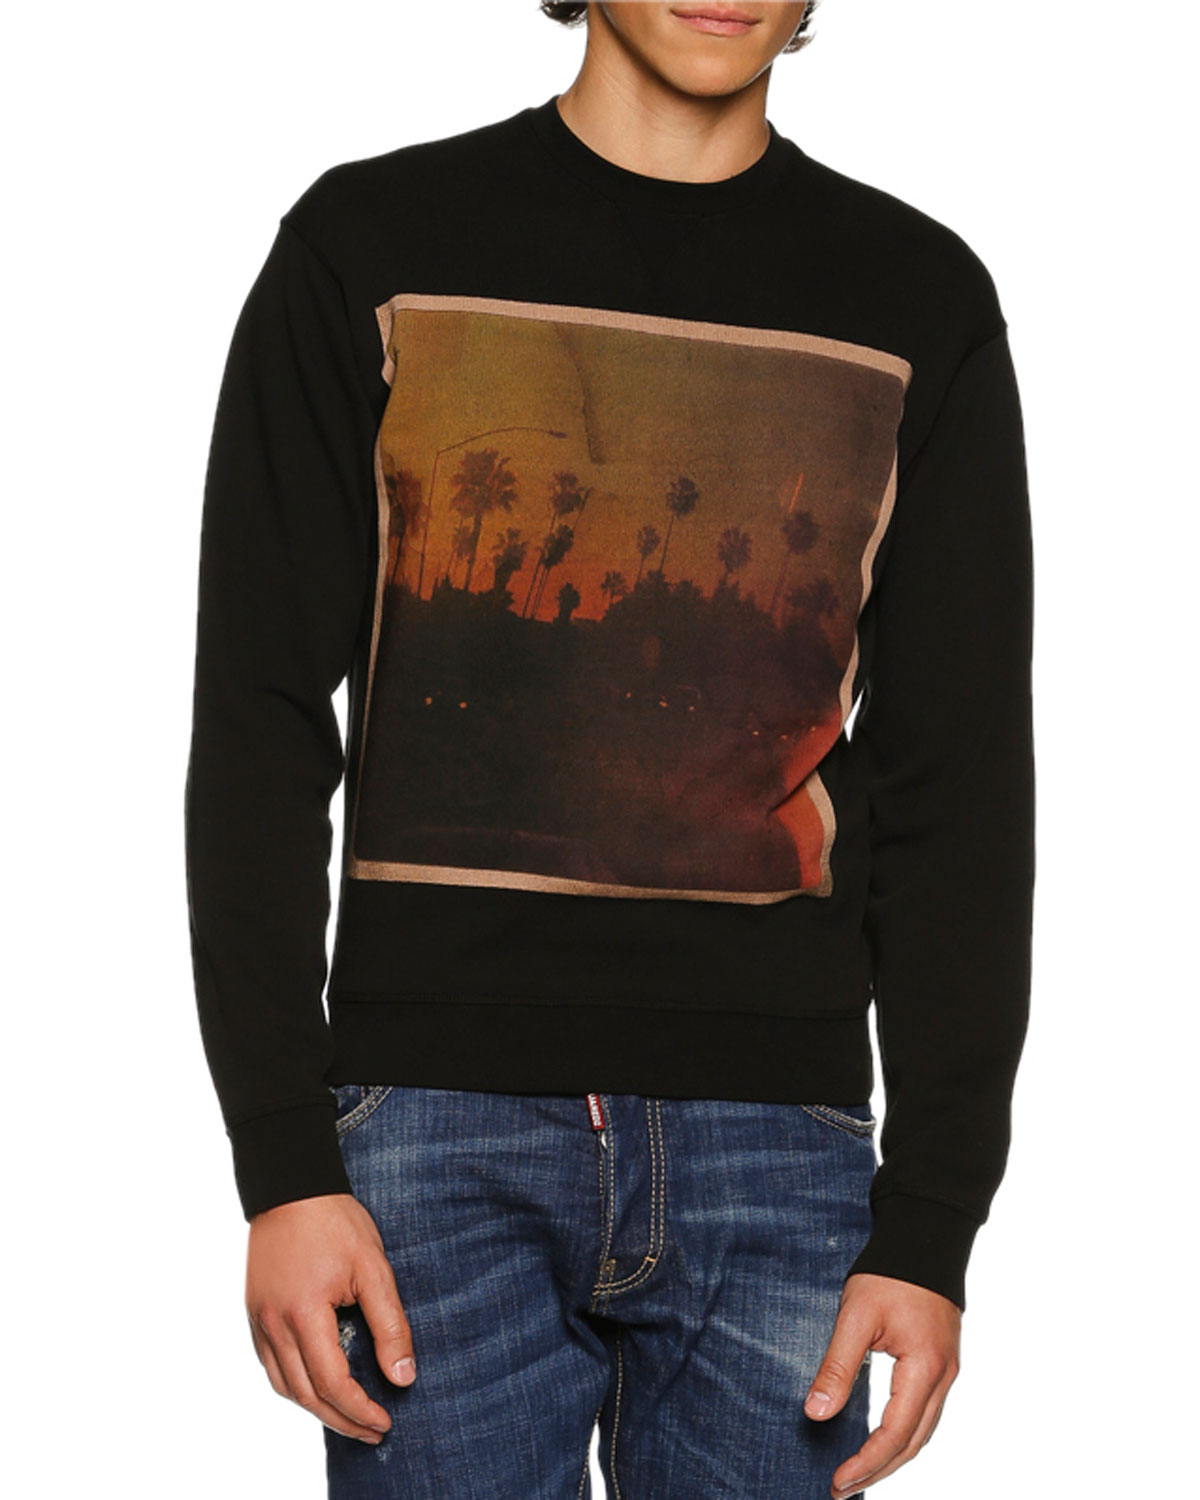 American Road Trip Graphic Sweatshirt, Black